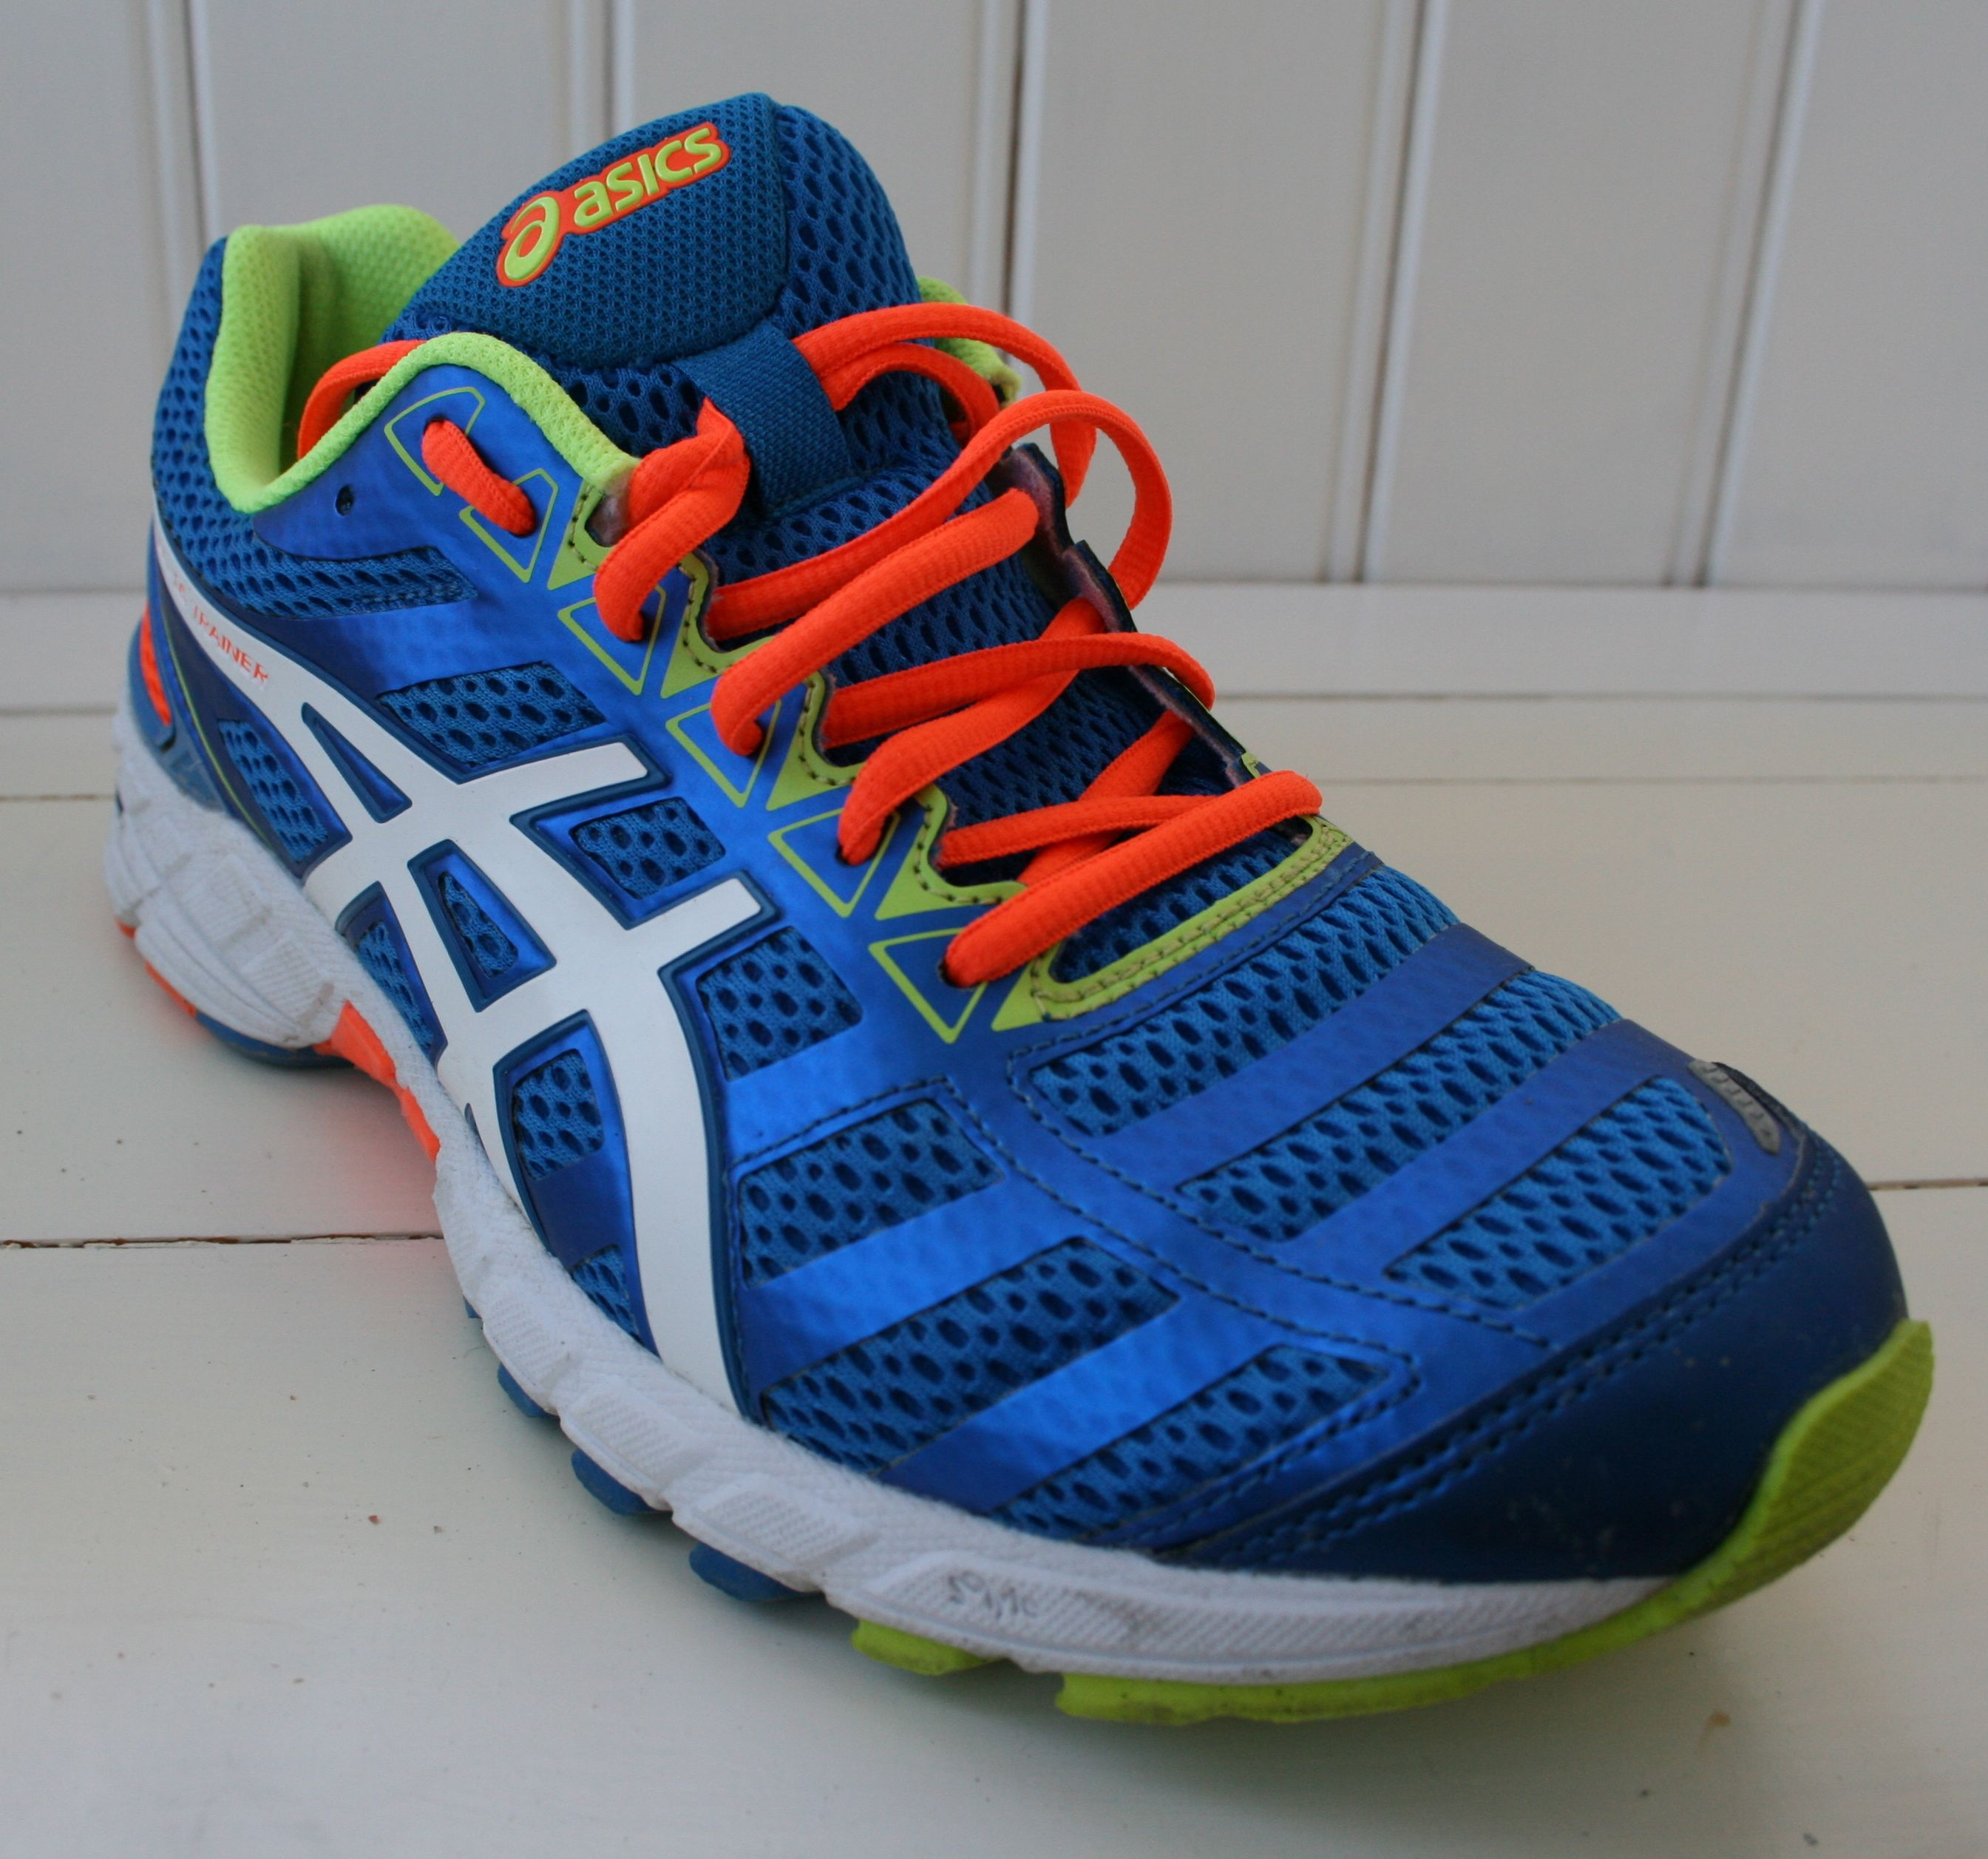 best service 119a3 24959 Skotest: Asics Gel-DS Trainer 18 - Joggingskor.nu